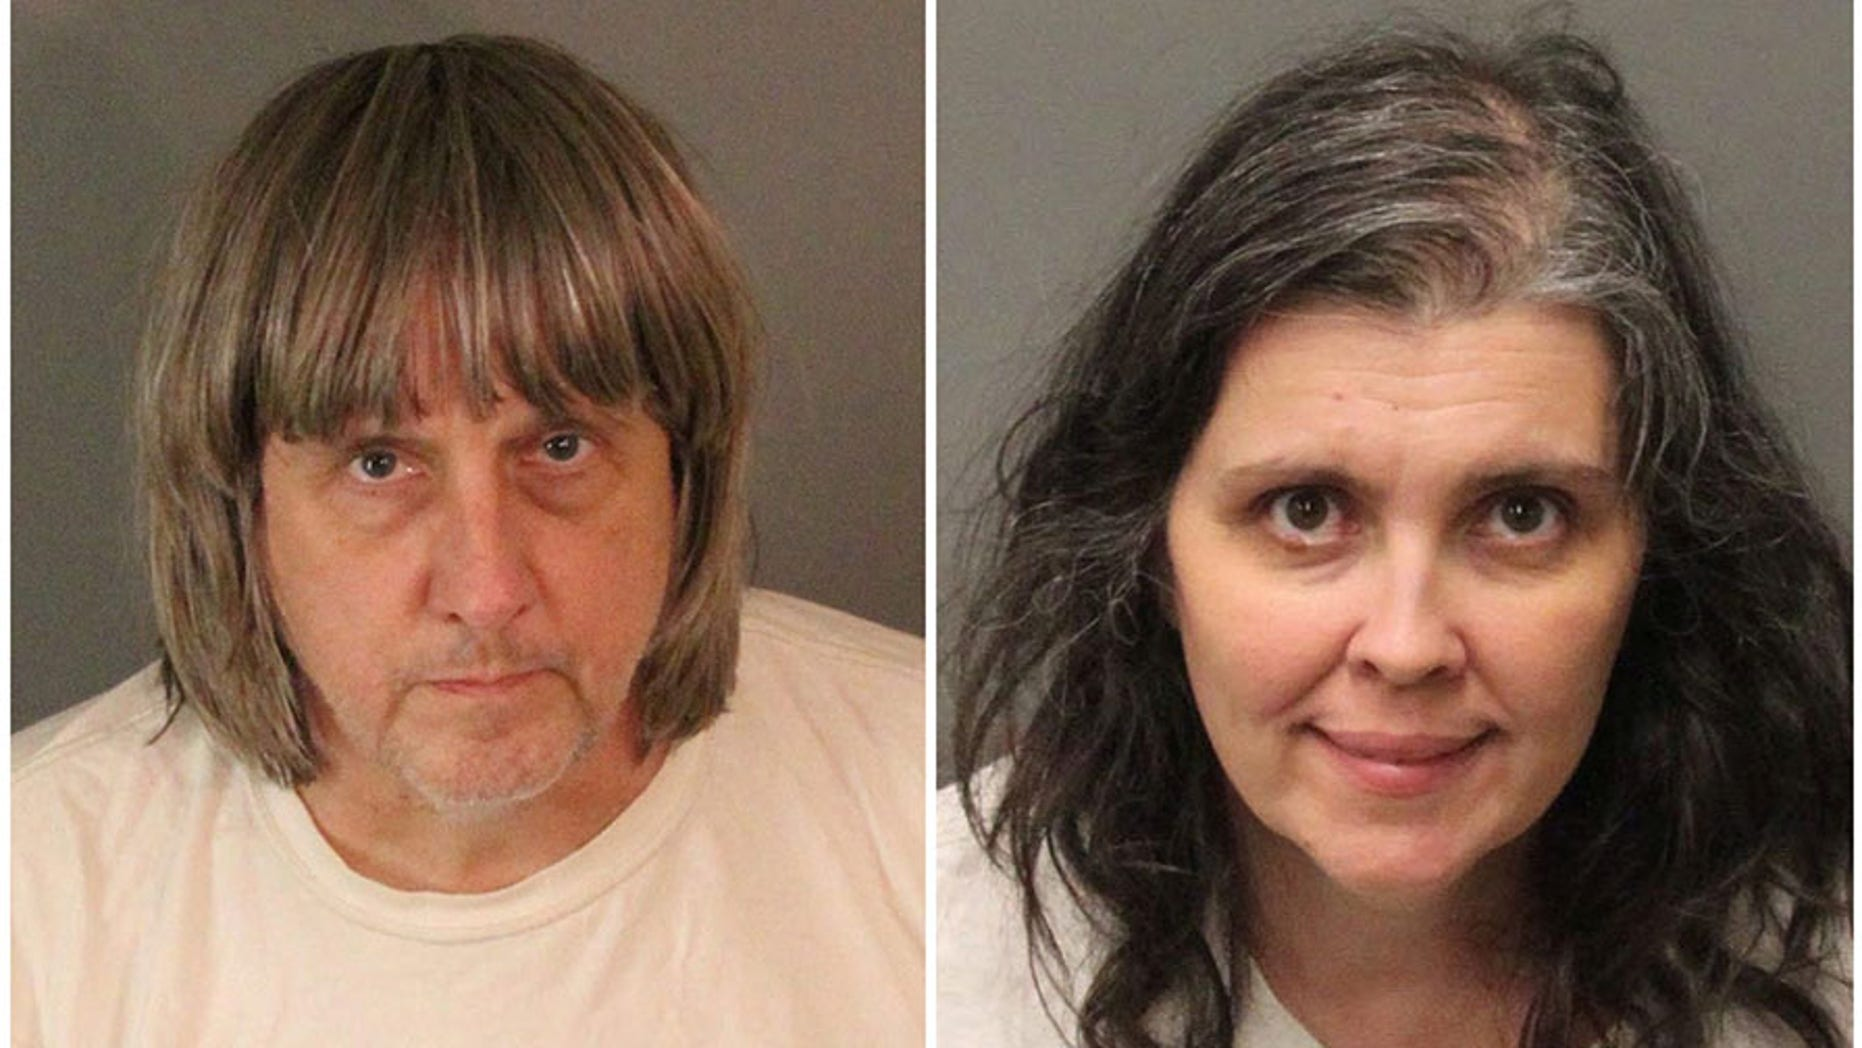 A combination photo of David Allen Turpin (L) and Louise Ann Turpin as they appear in booking photos provided by the Riverside County Sheriff's Department in Riverside County, California, Jan. 15, 2018.